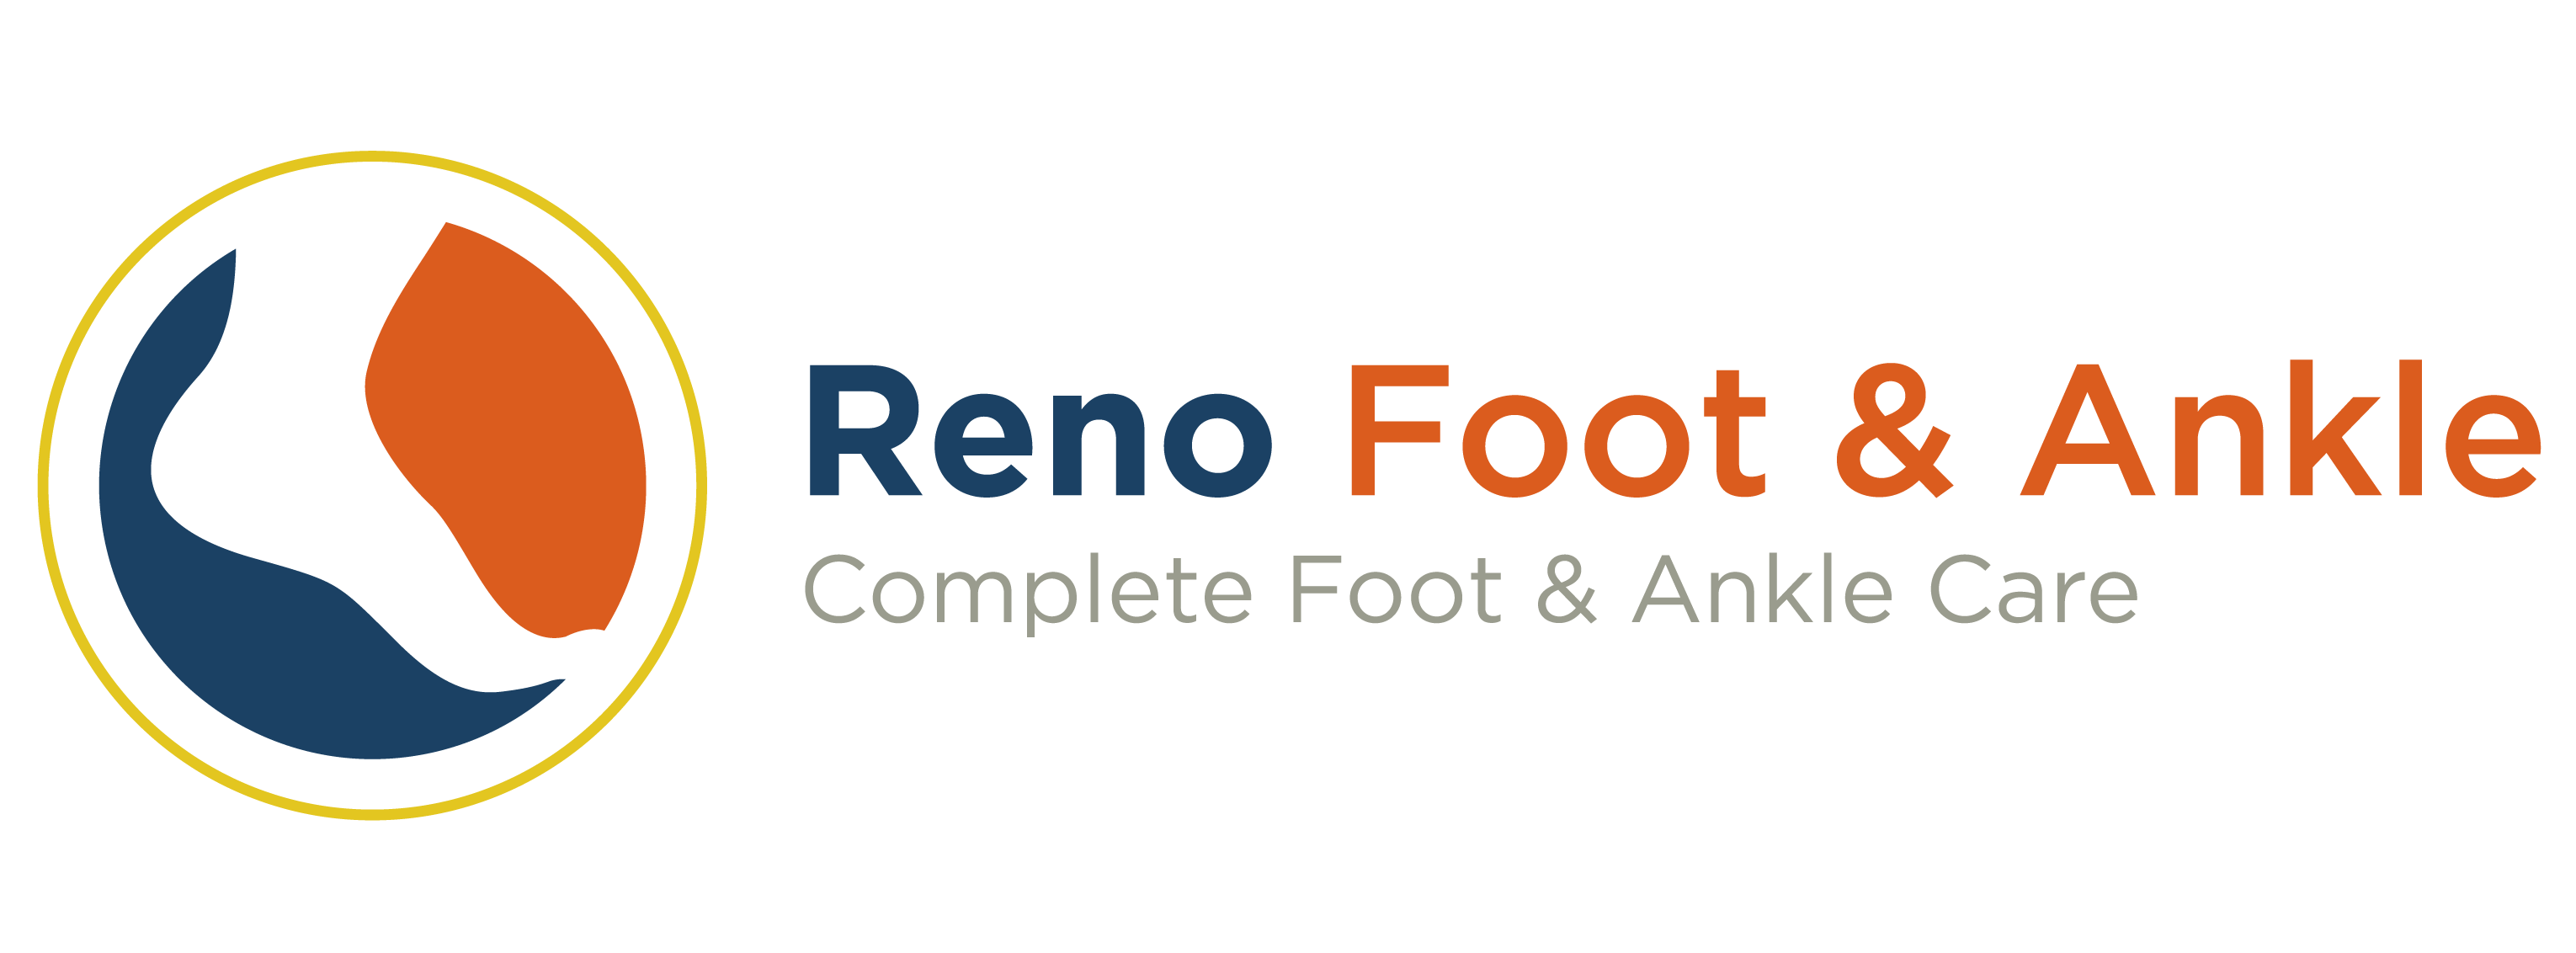 Reno Foot and Ankle Logo